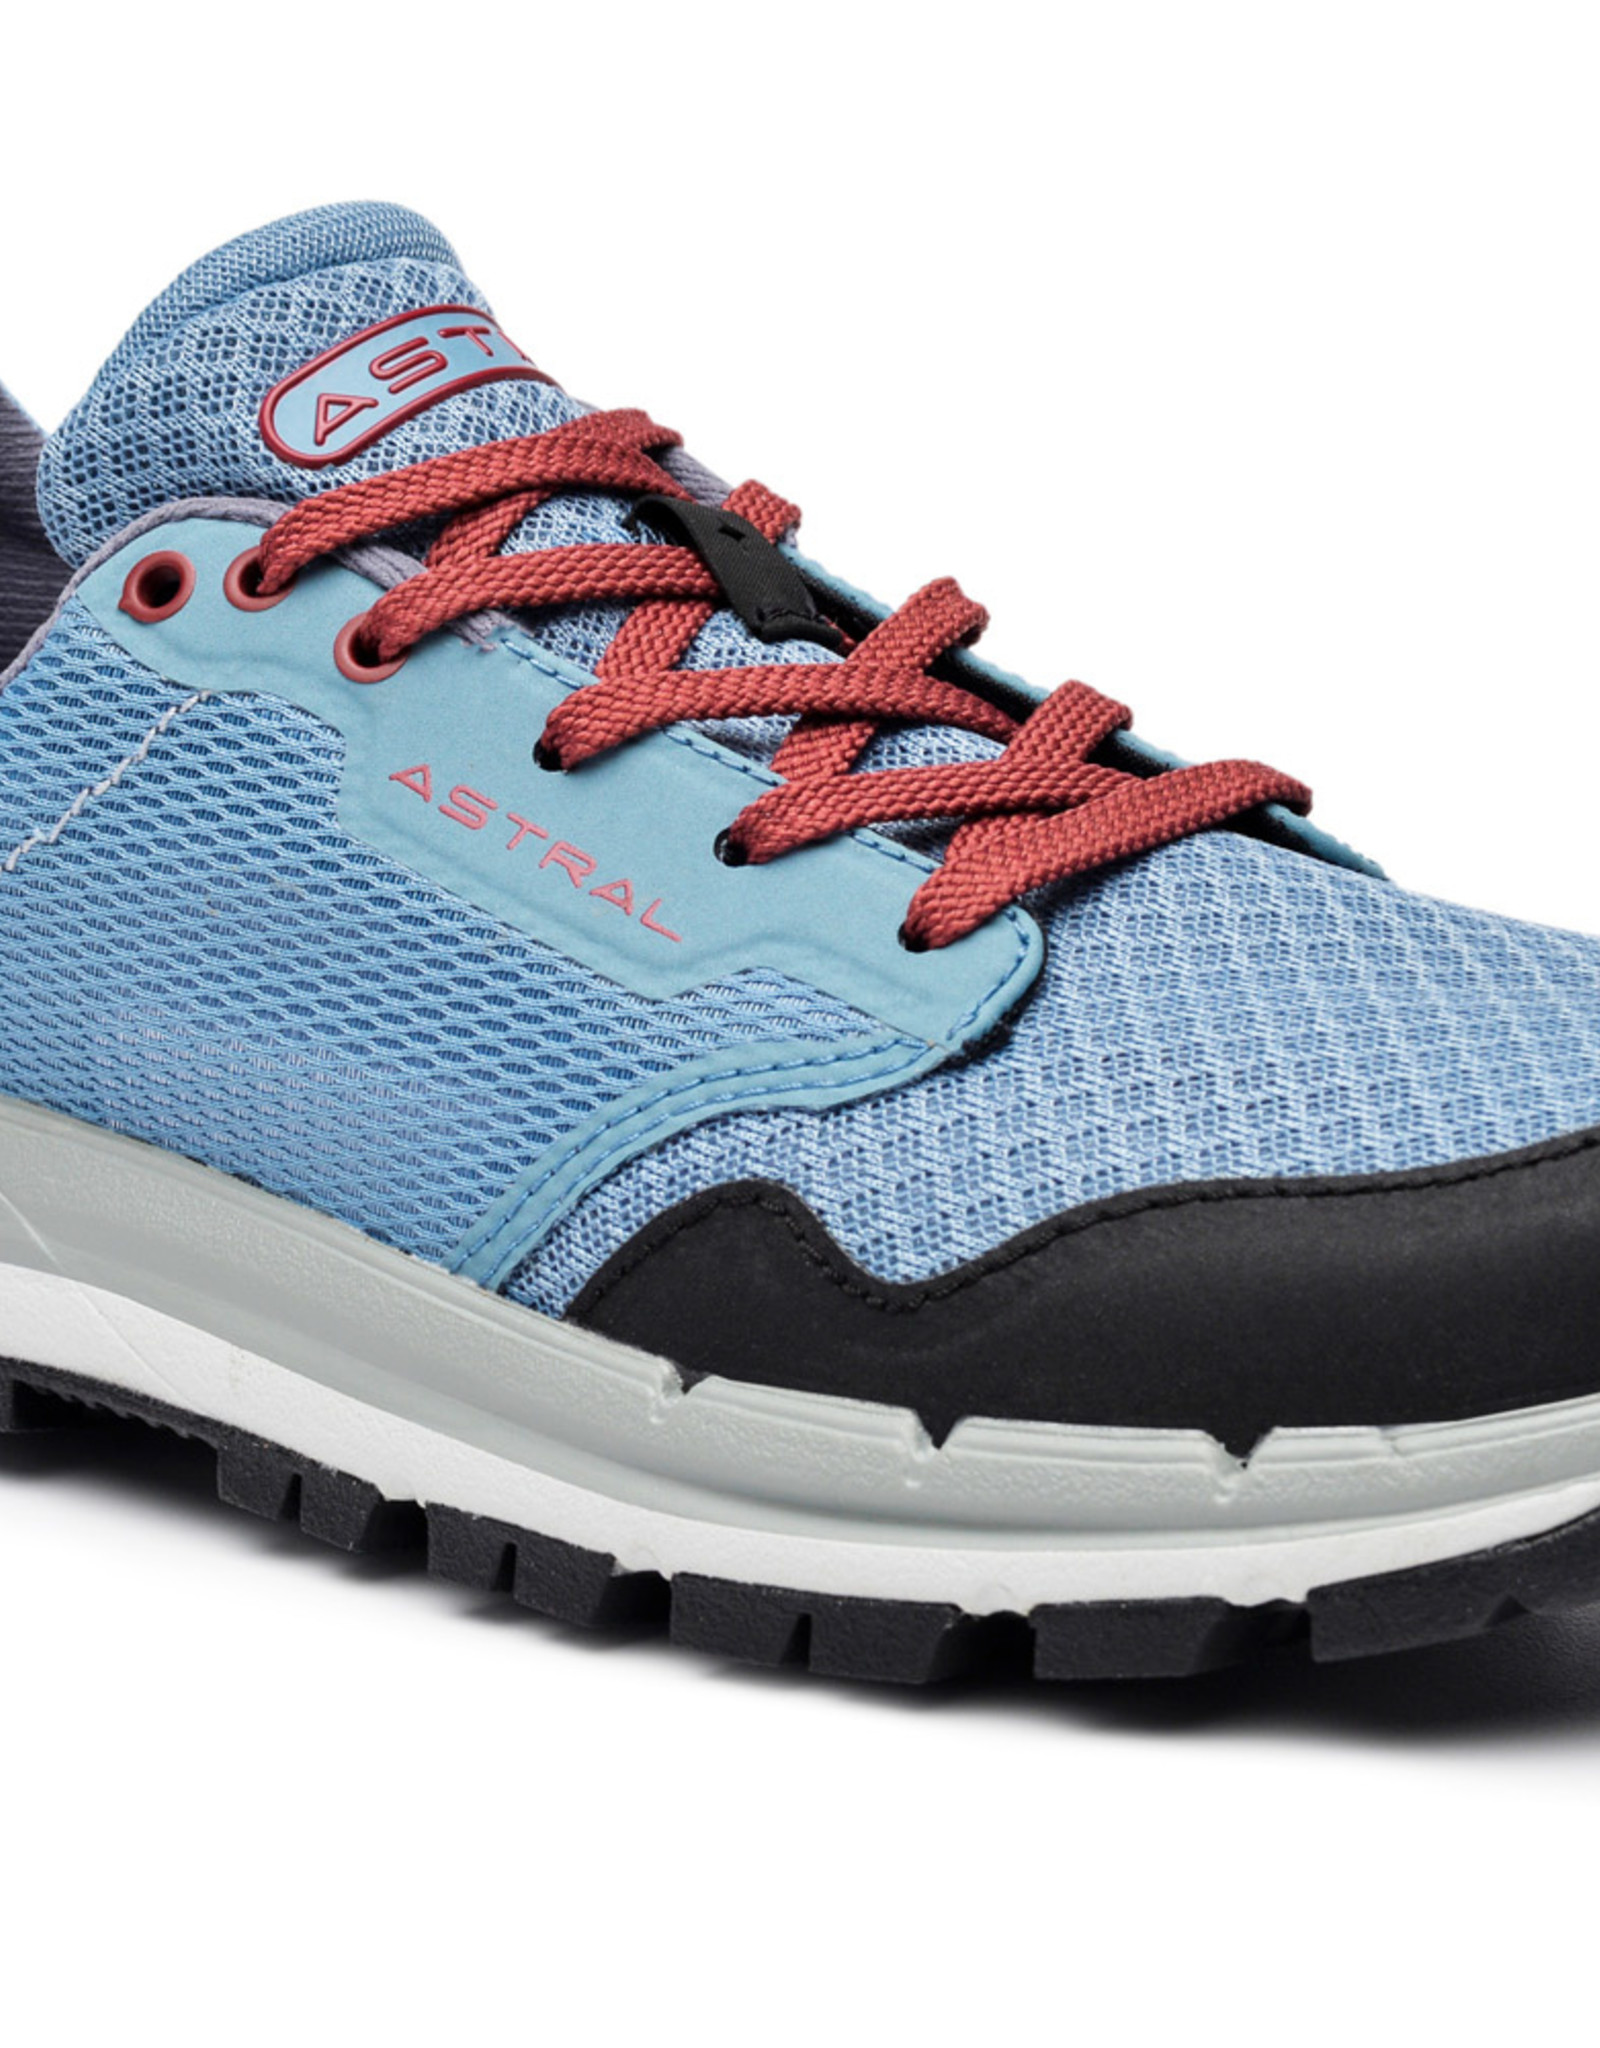 Astral WOMEN'S ASTRAL TR1 MESH HIKER-RAINSHADOW BLUE